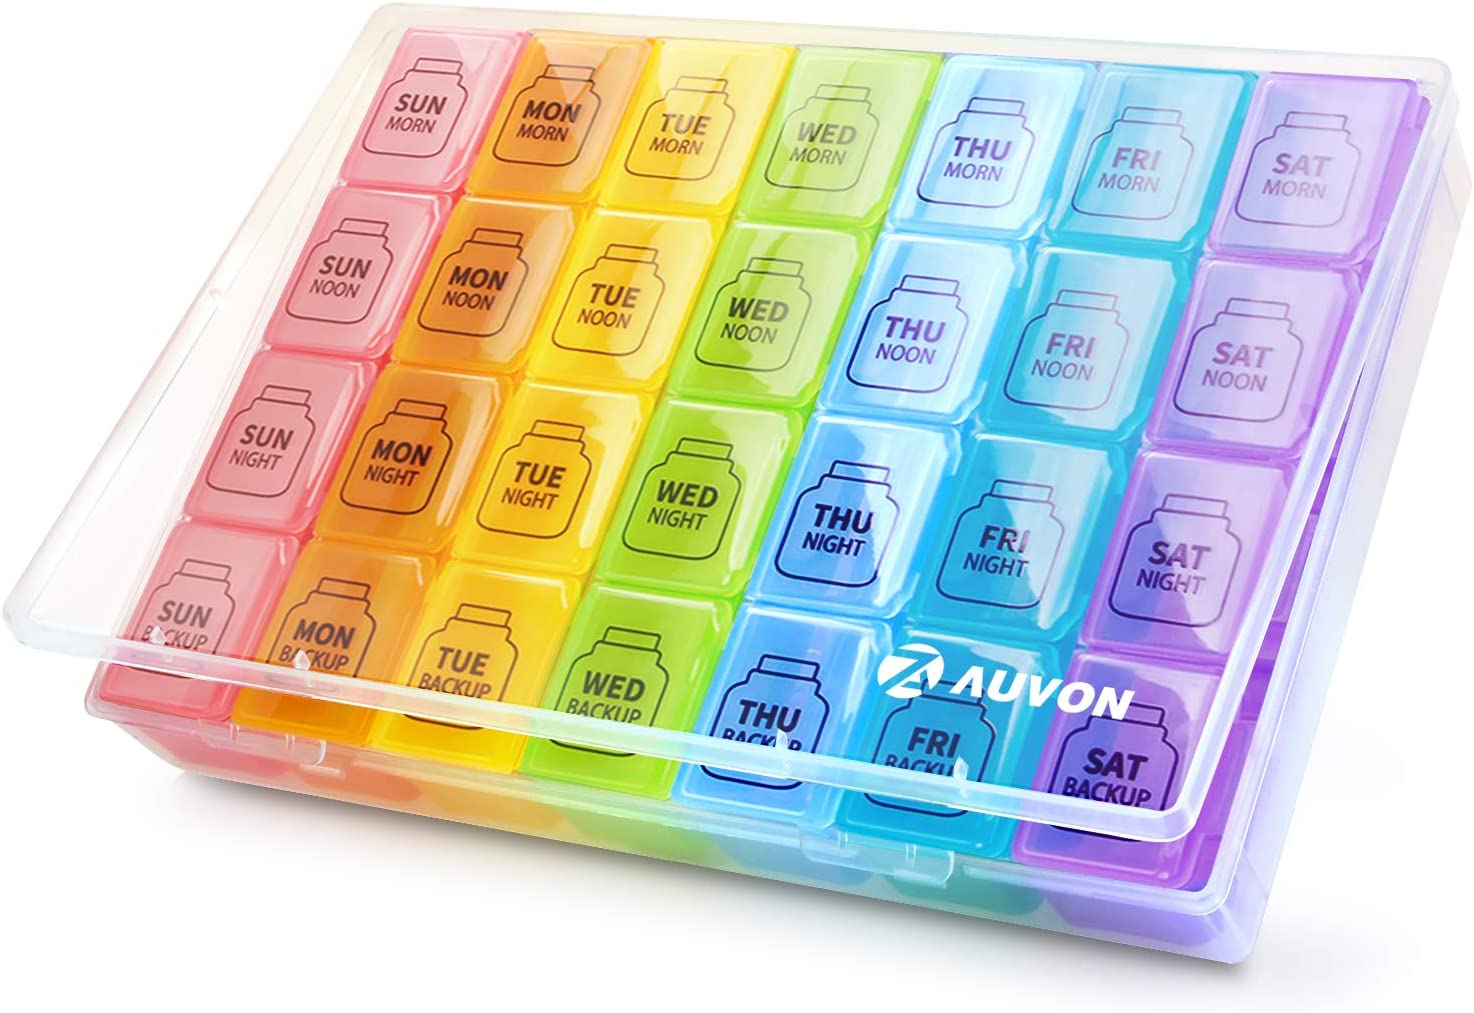 AUVON iMedassist Monster Weekly Pill Organizer, 2nd Gen Extra Large Pill Box Case (7-Day / 4-Times-A-Day) with Huge Compartments to Hold Plenty of Fish Oils, Vitamins,Supplement and Medication (XL): Health & Personal Care